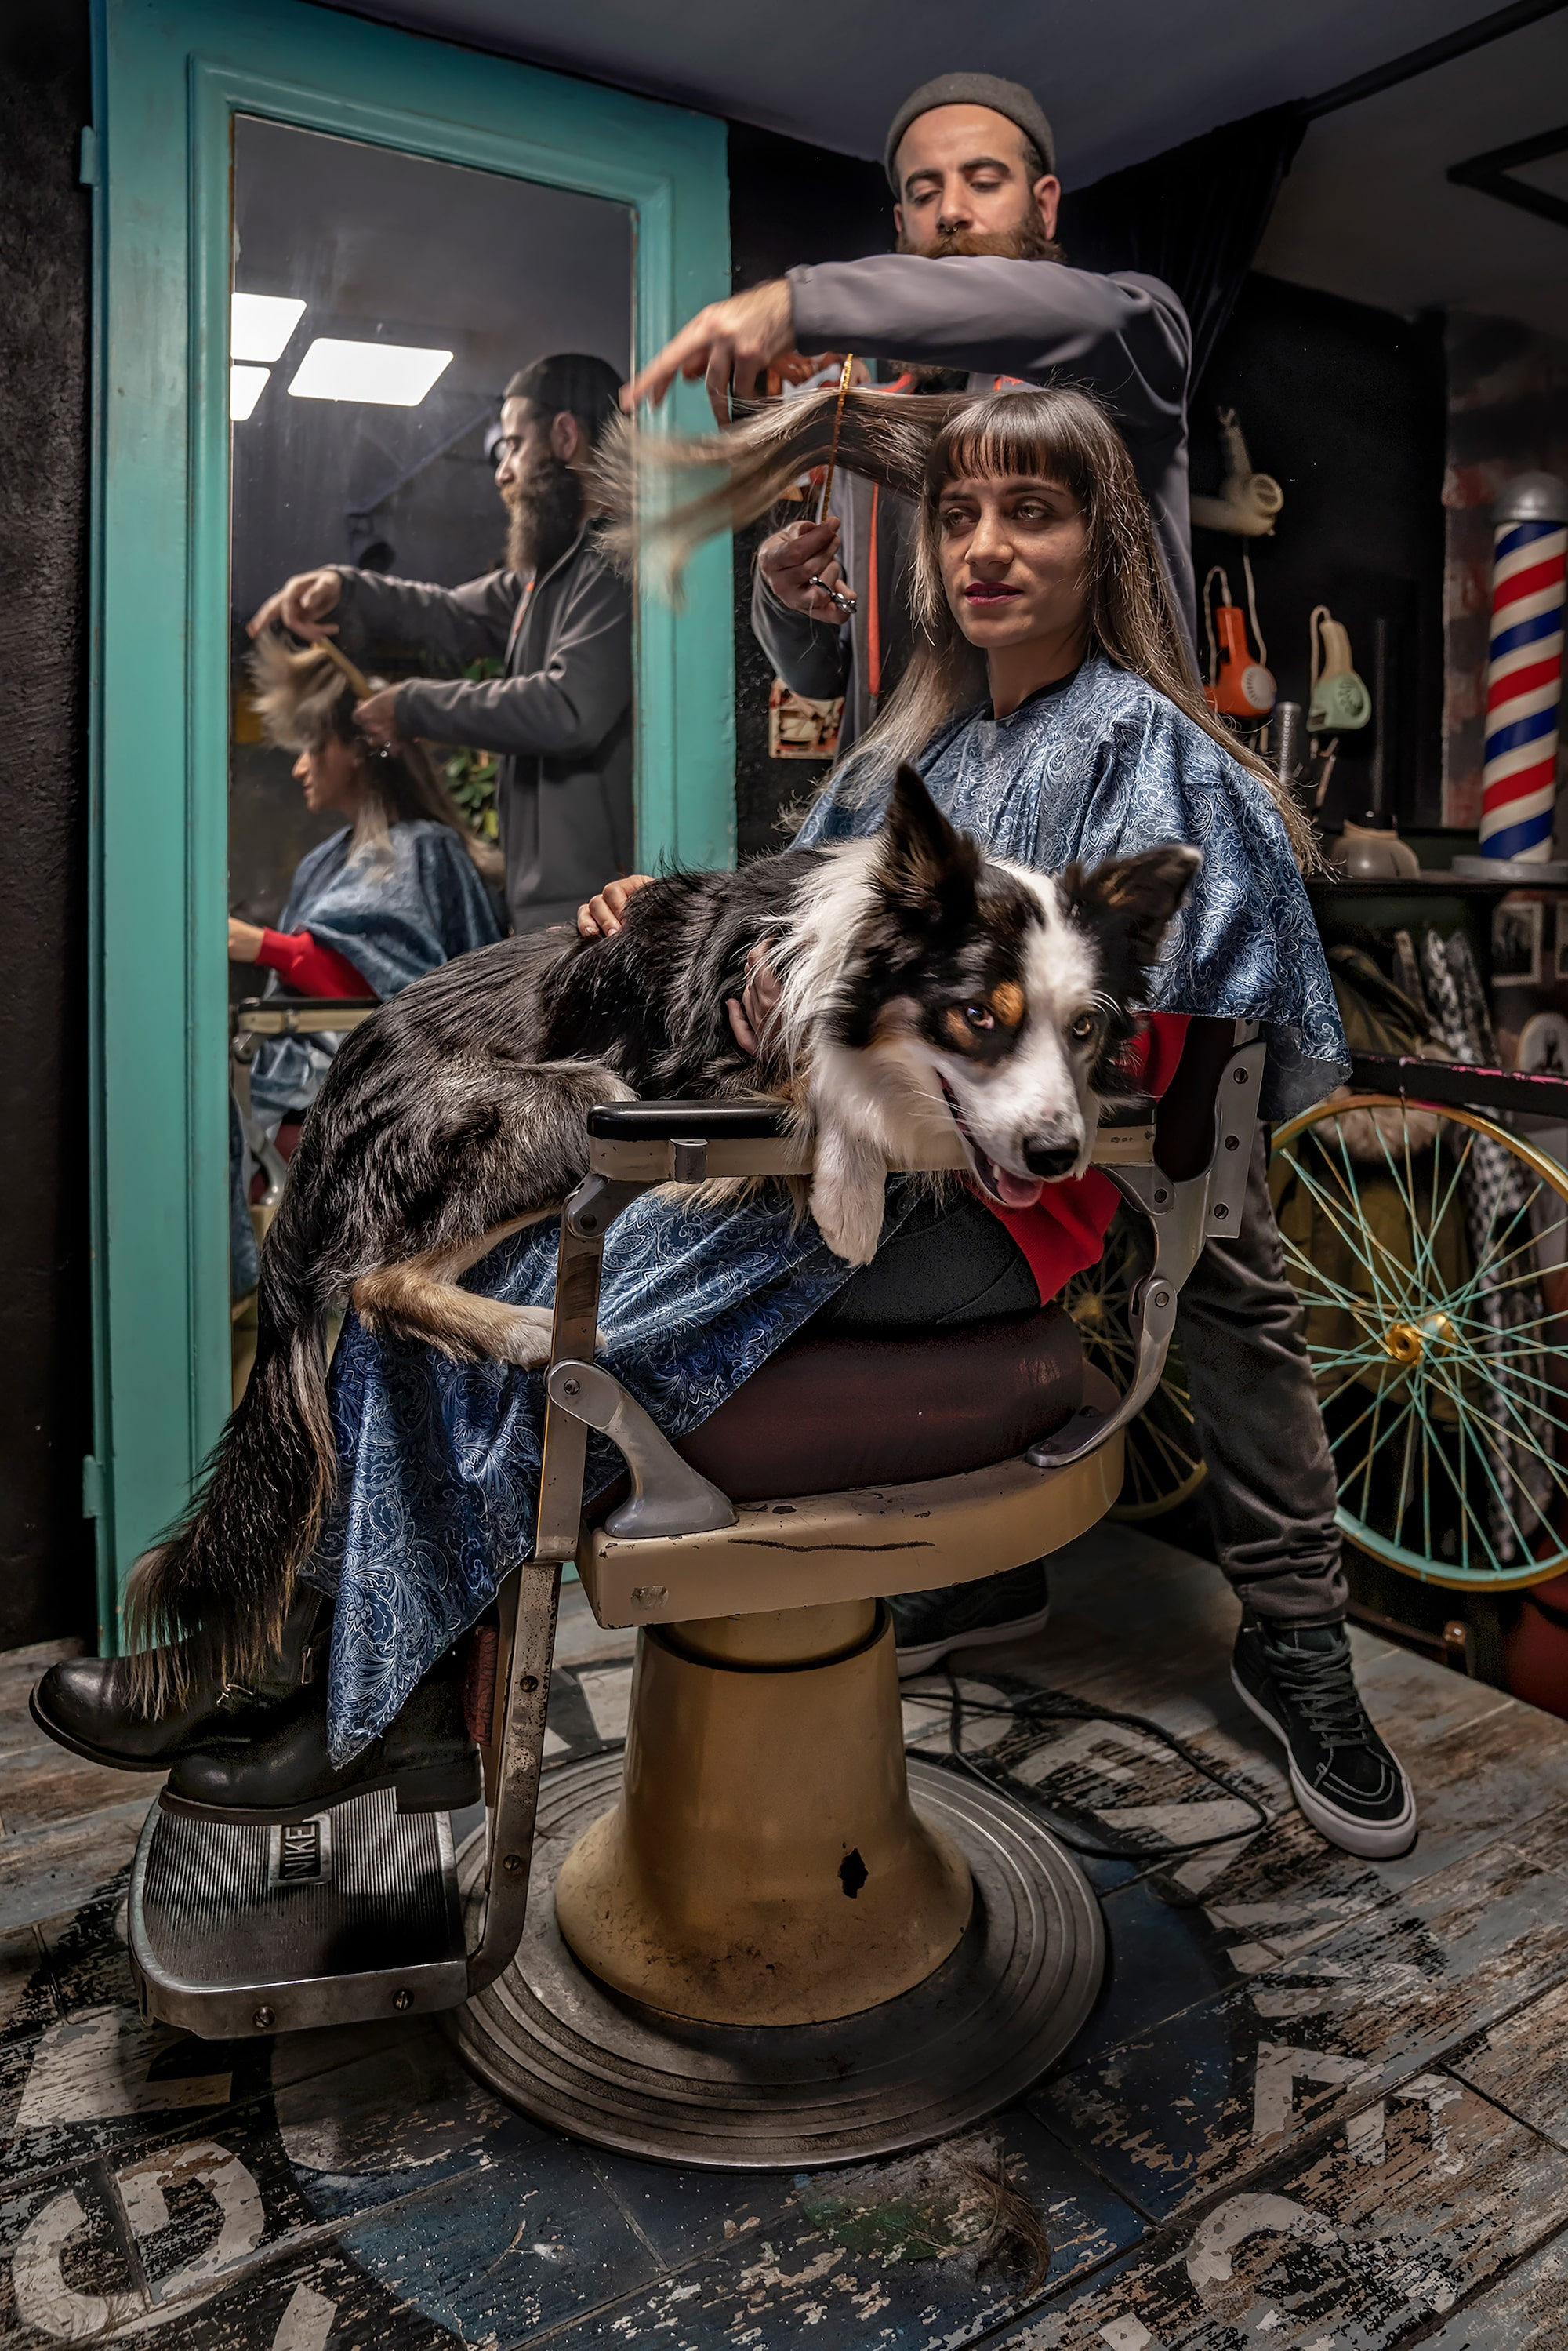 murat pulat sony alpha 7RII lady sitting in a barbers chair getting her hair cut with a large dog on her lap